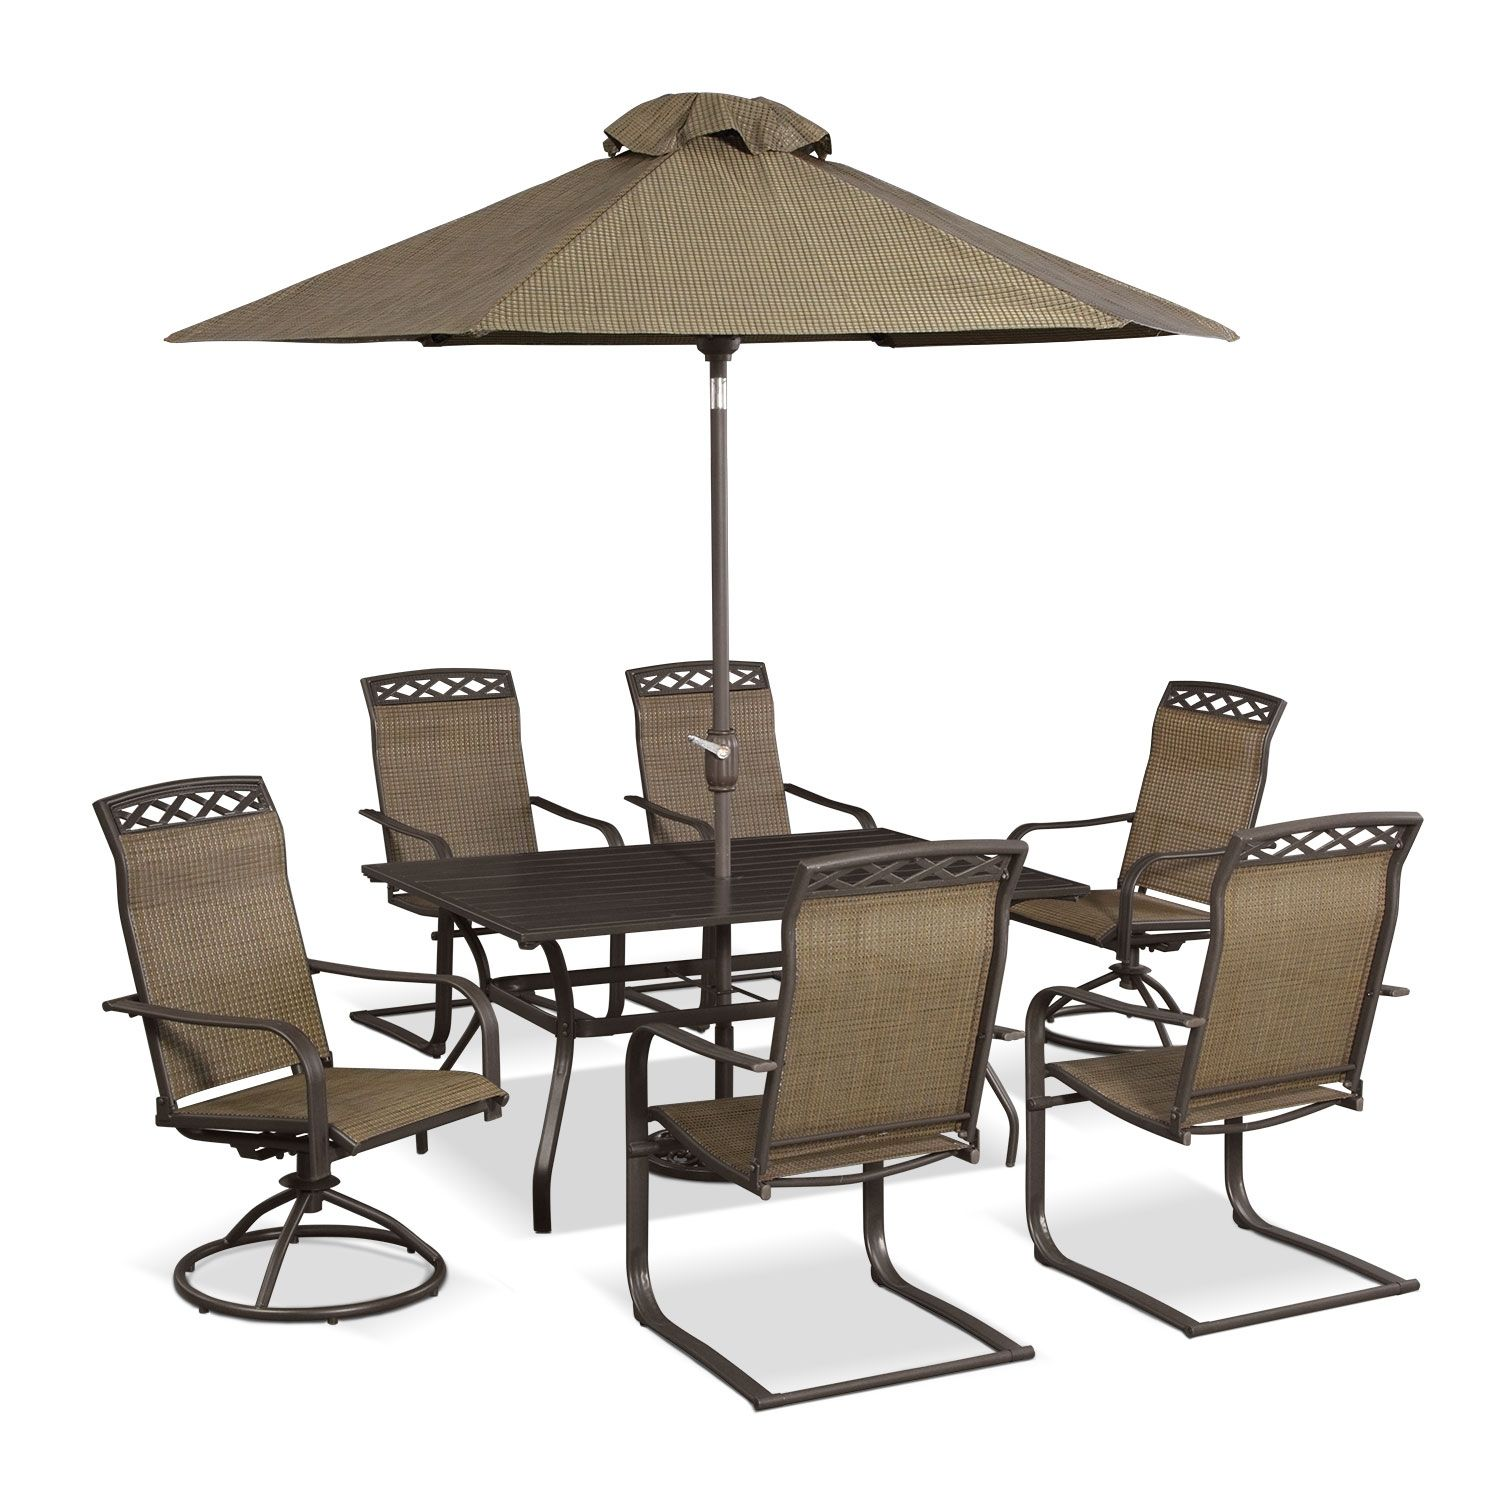 Outdoor Dining Is The New Thing We Love Patio Furniture Outdoor Furniture Terrace 9 Pc Outdoor Dining Room